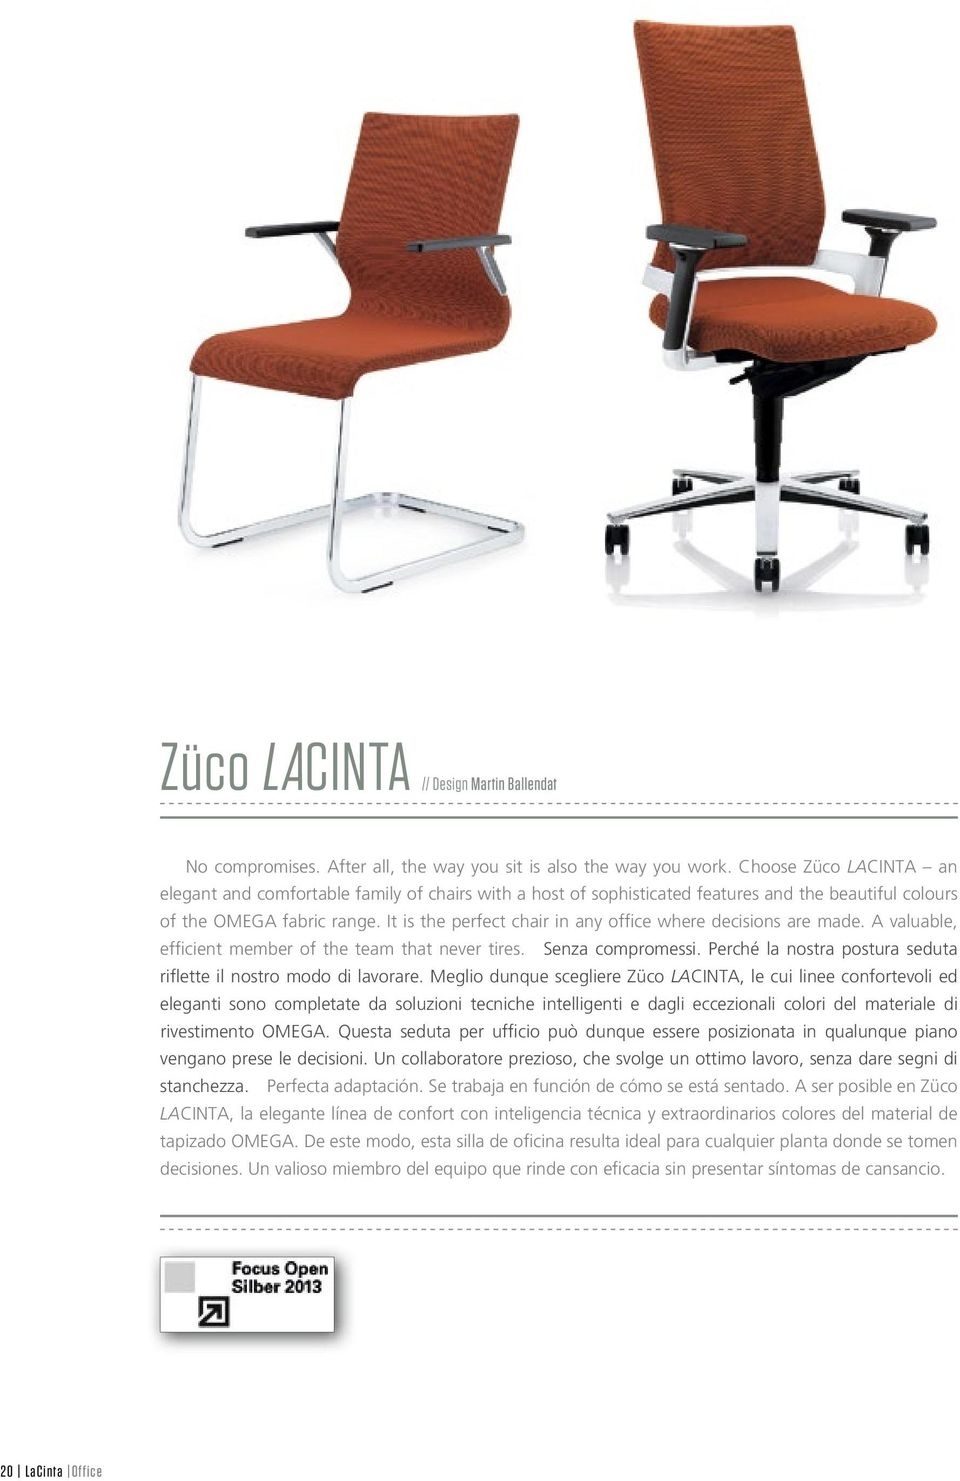 It is the perfect chair in any office where decisions are made. A valuable, efficient member of the team that never tires. Senza compromessi.